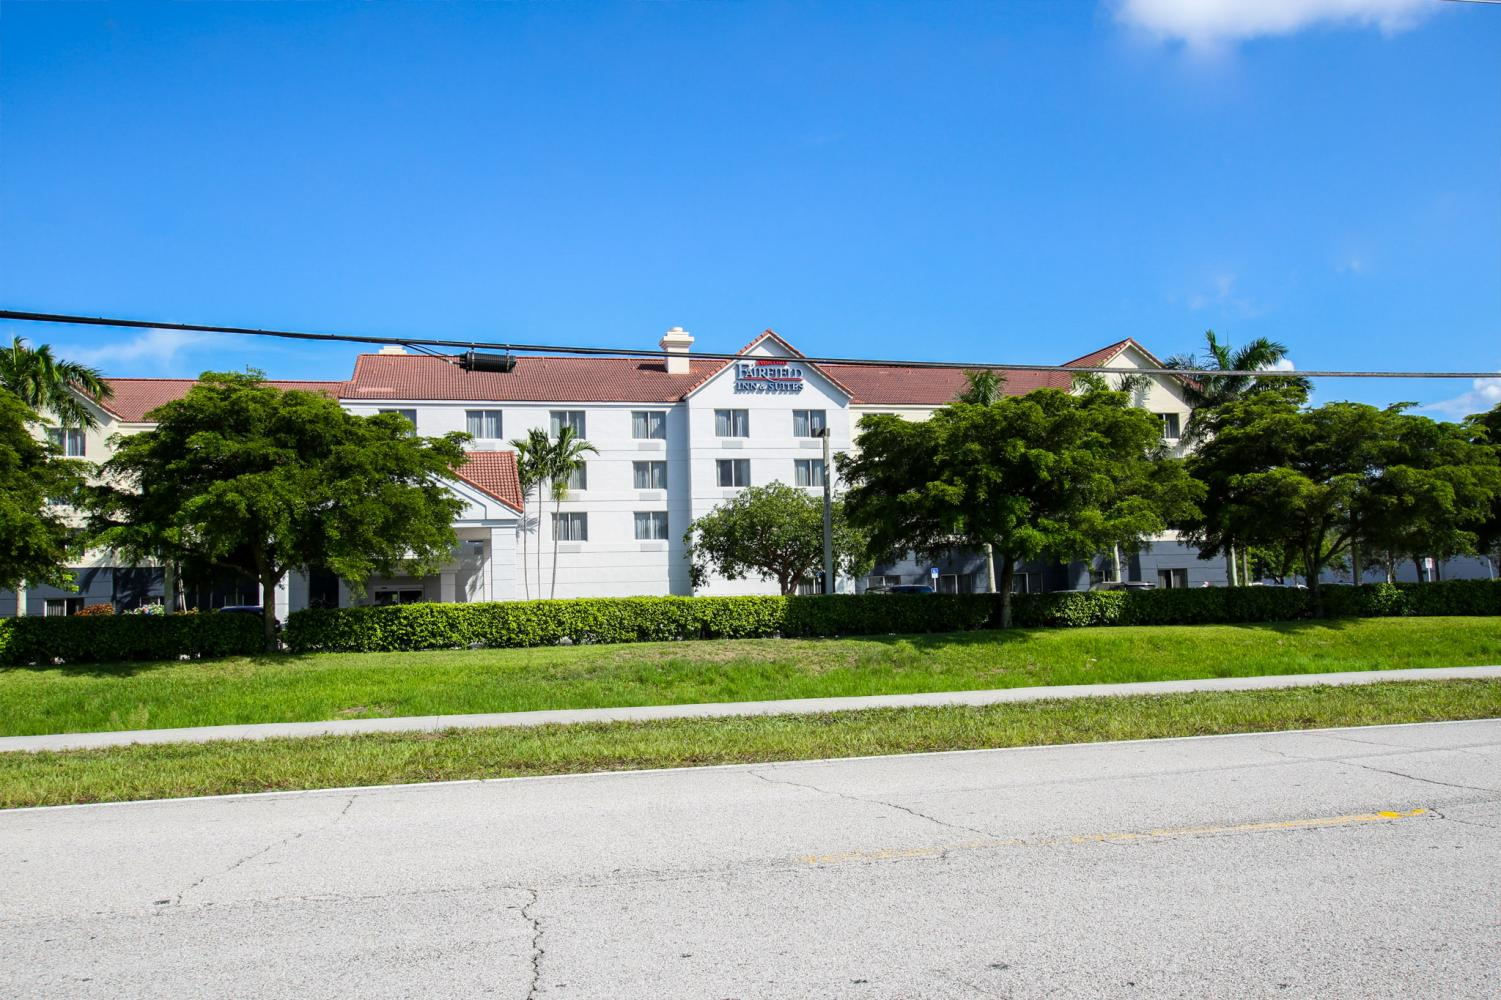 The Fairfield Inn & Suites, located near FAU and Cinemark Palace 20 movie theater, will be the temporary housing for students who were told on campus housing was overbooked. Photo by Alexander Rodriguez